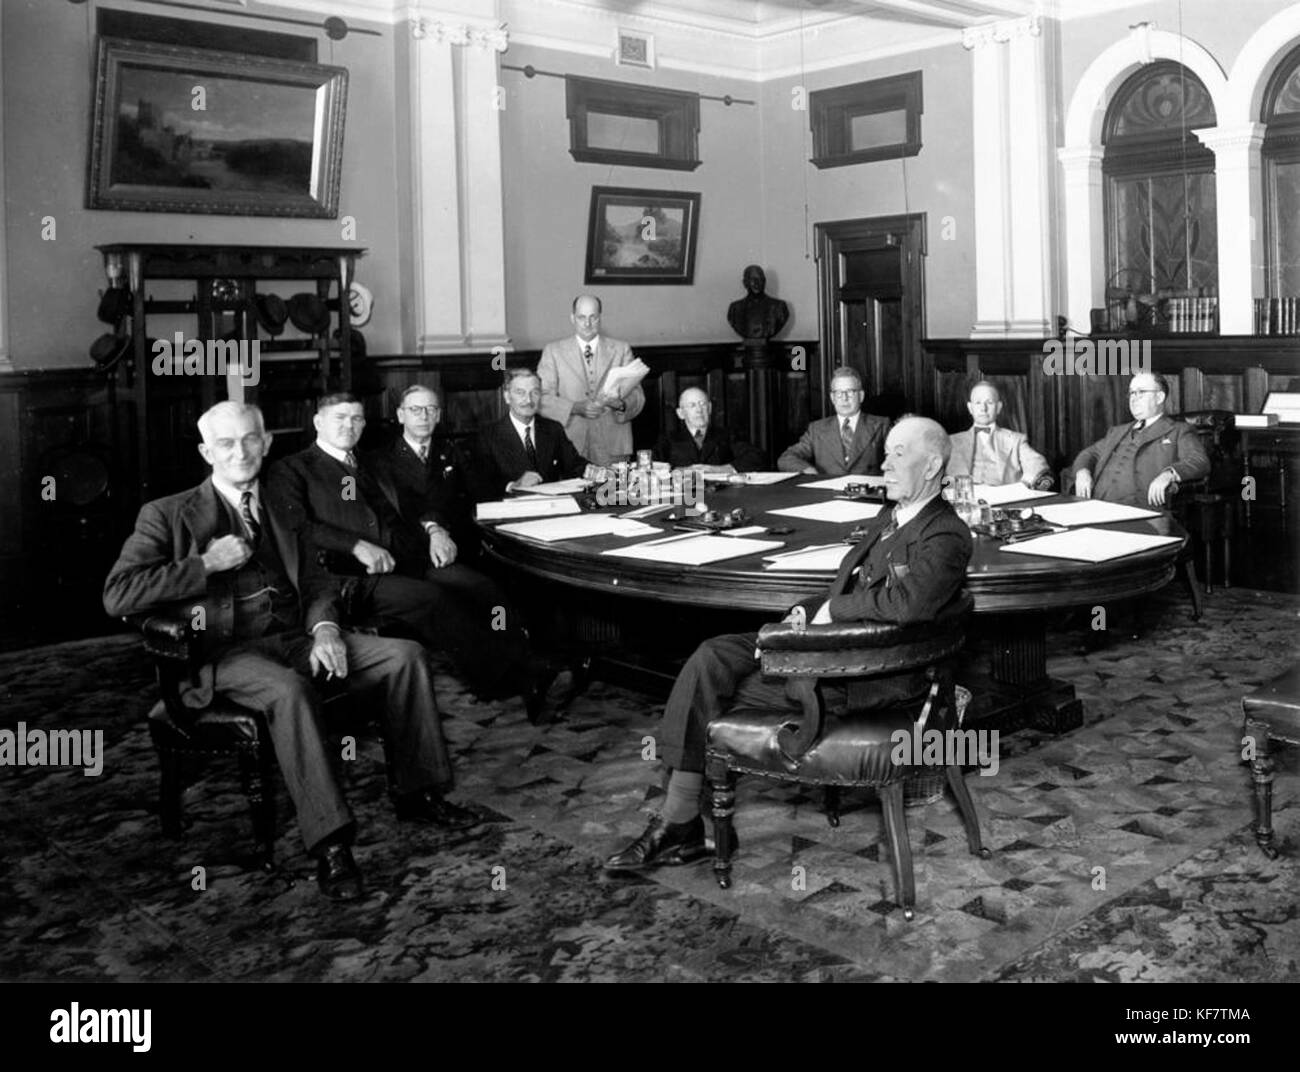 1 104296 Meeting Of The Hanlon Government At Queensland Parliament House